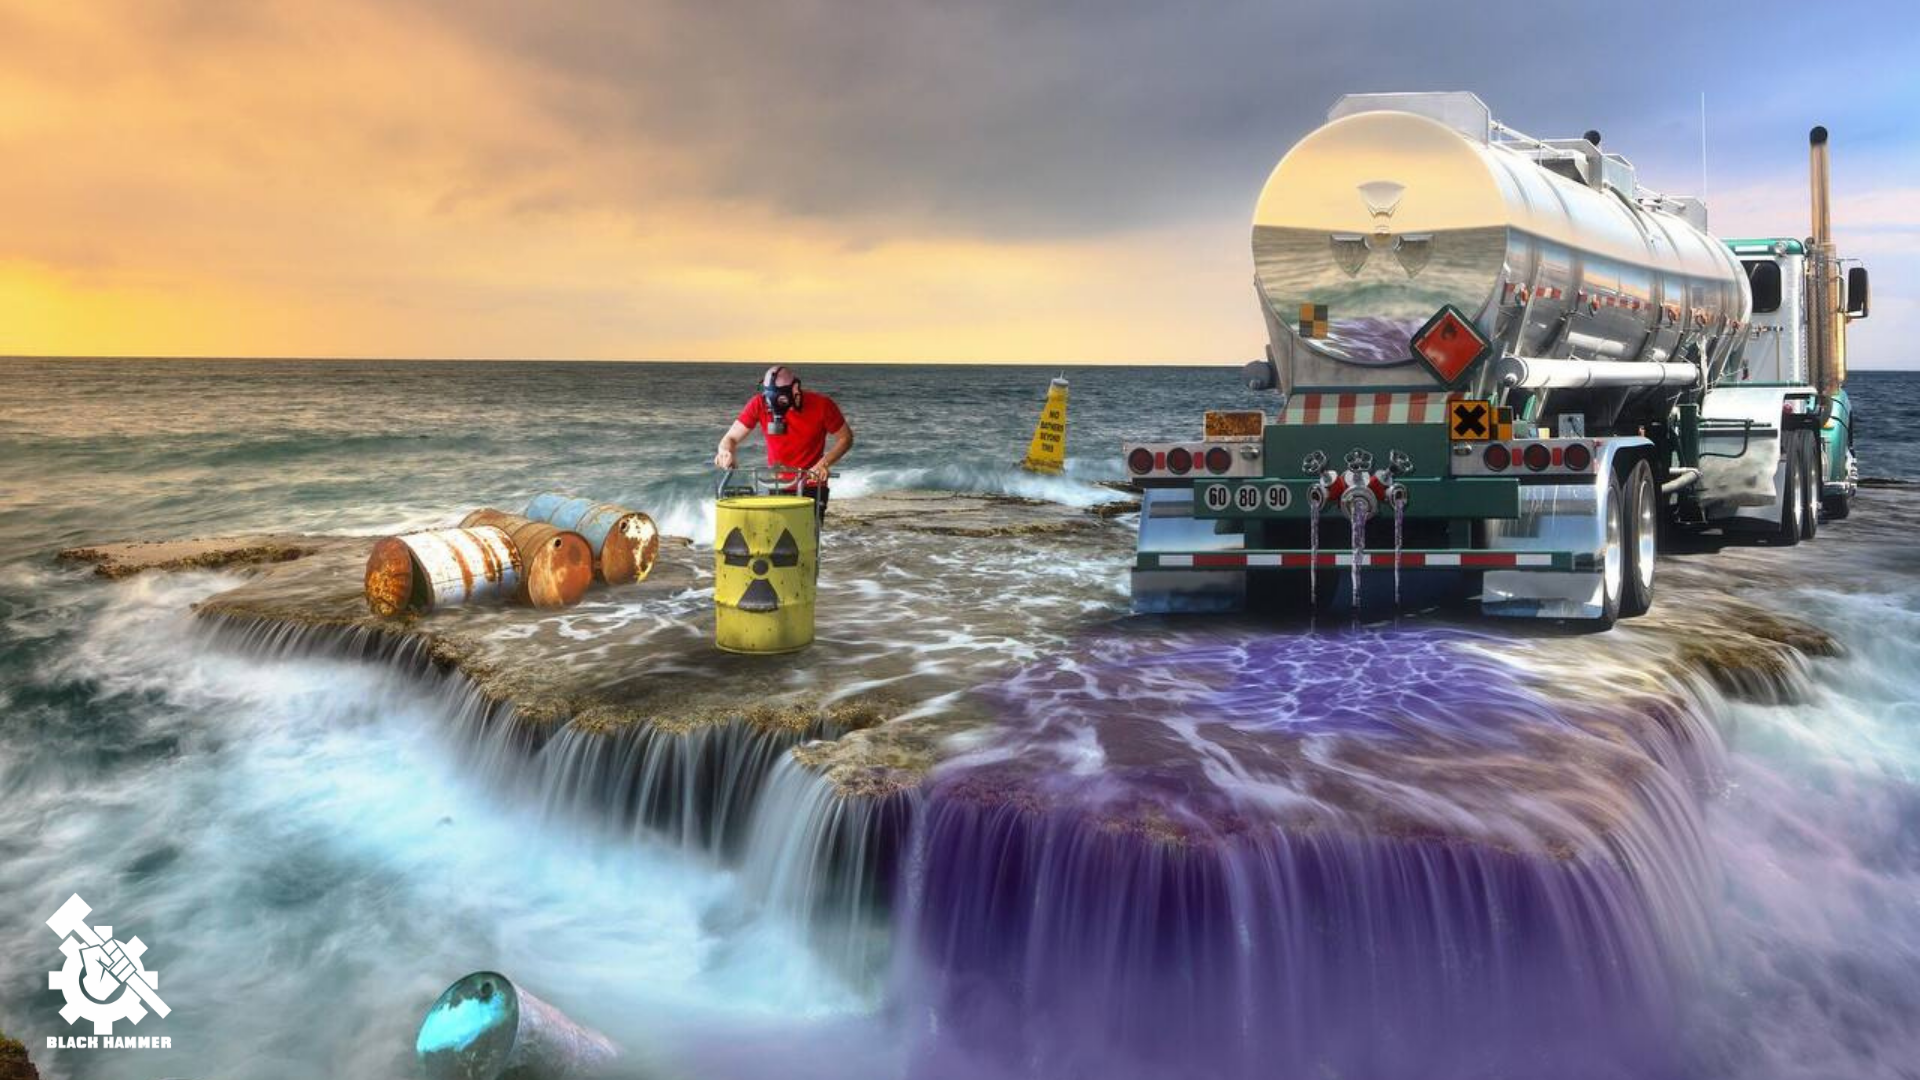 Will Fukushima Nuclear Waste Water Destroy The World?